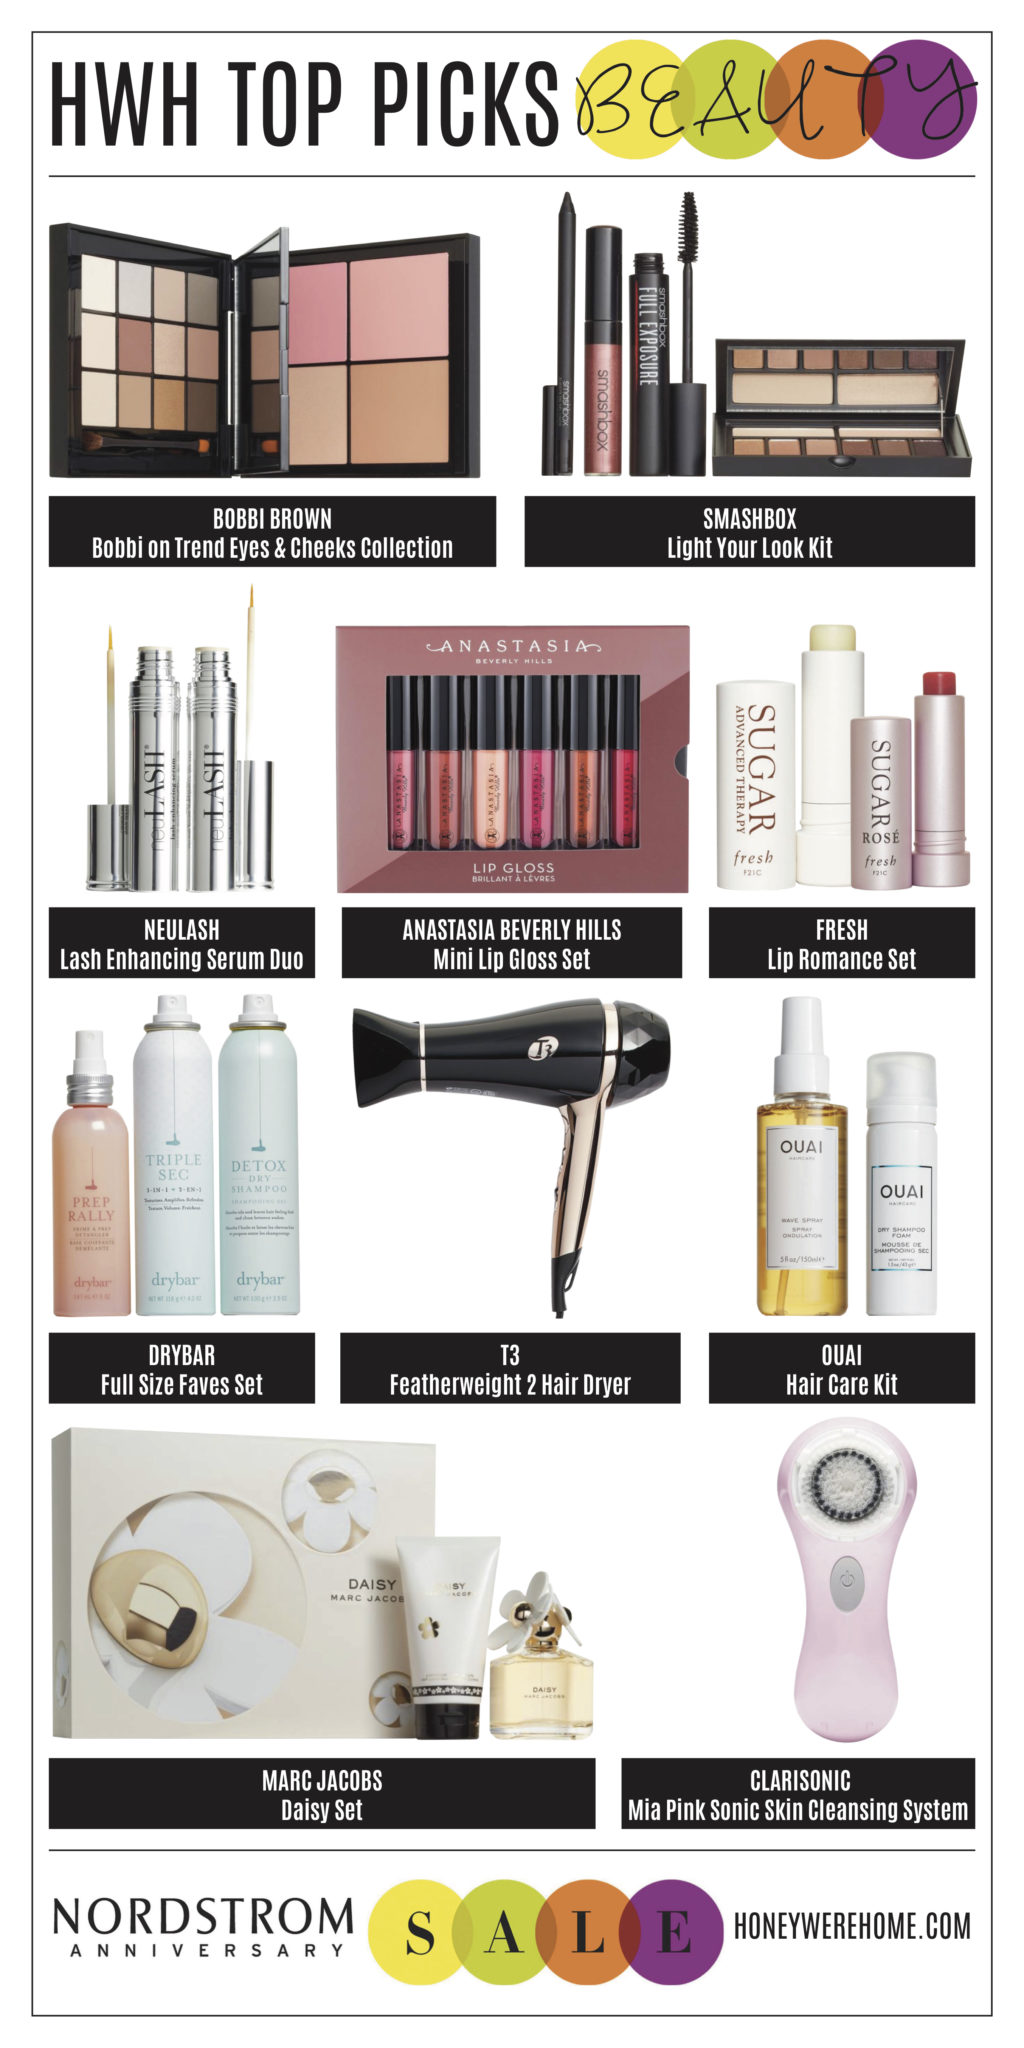 HWH Nordstrom Sale 2017, Beauty Collage